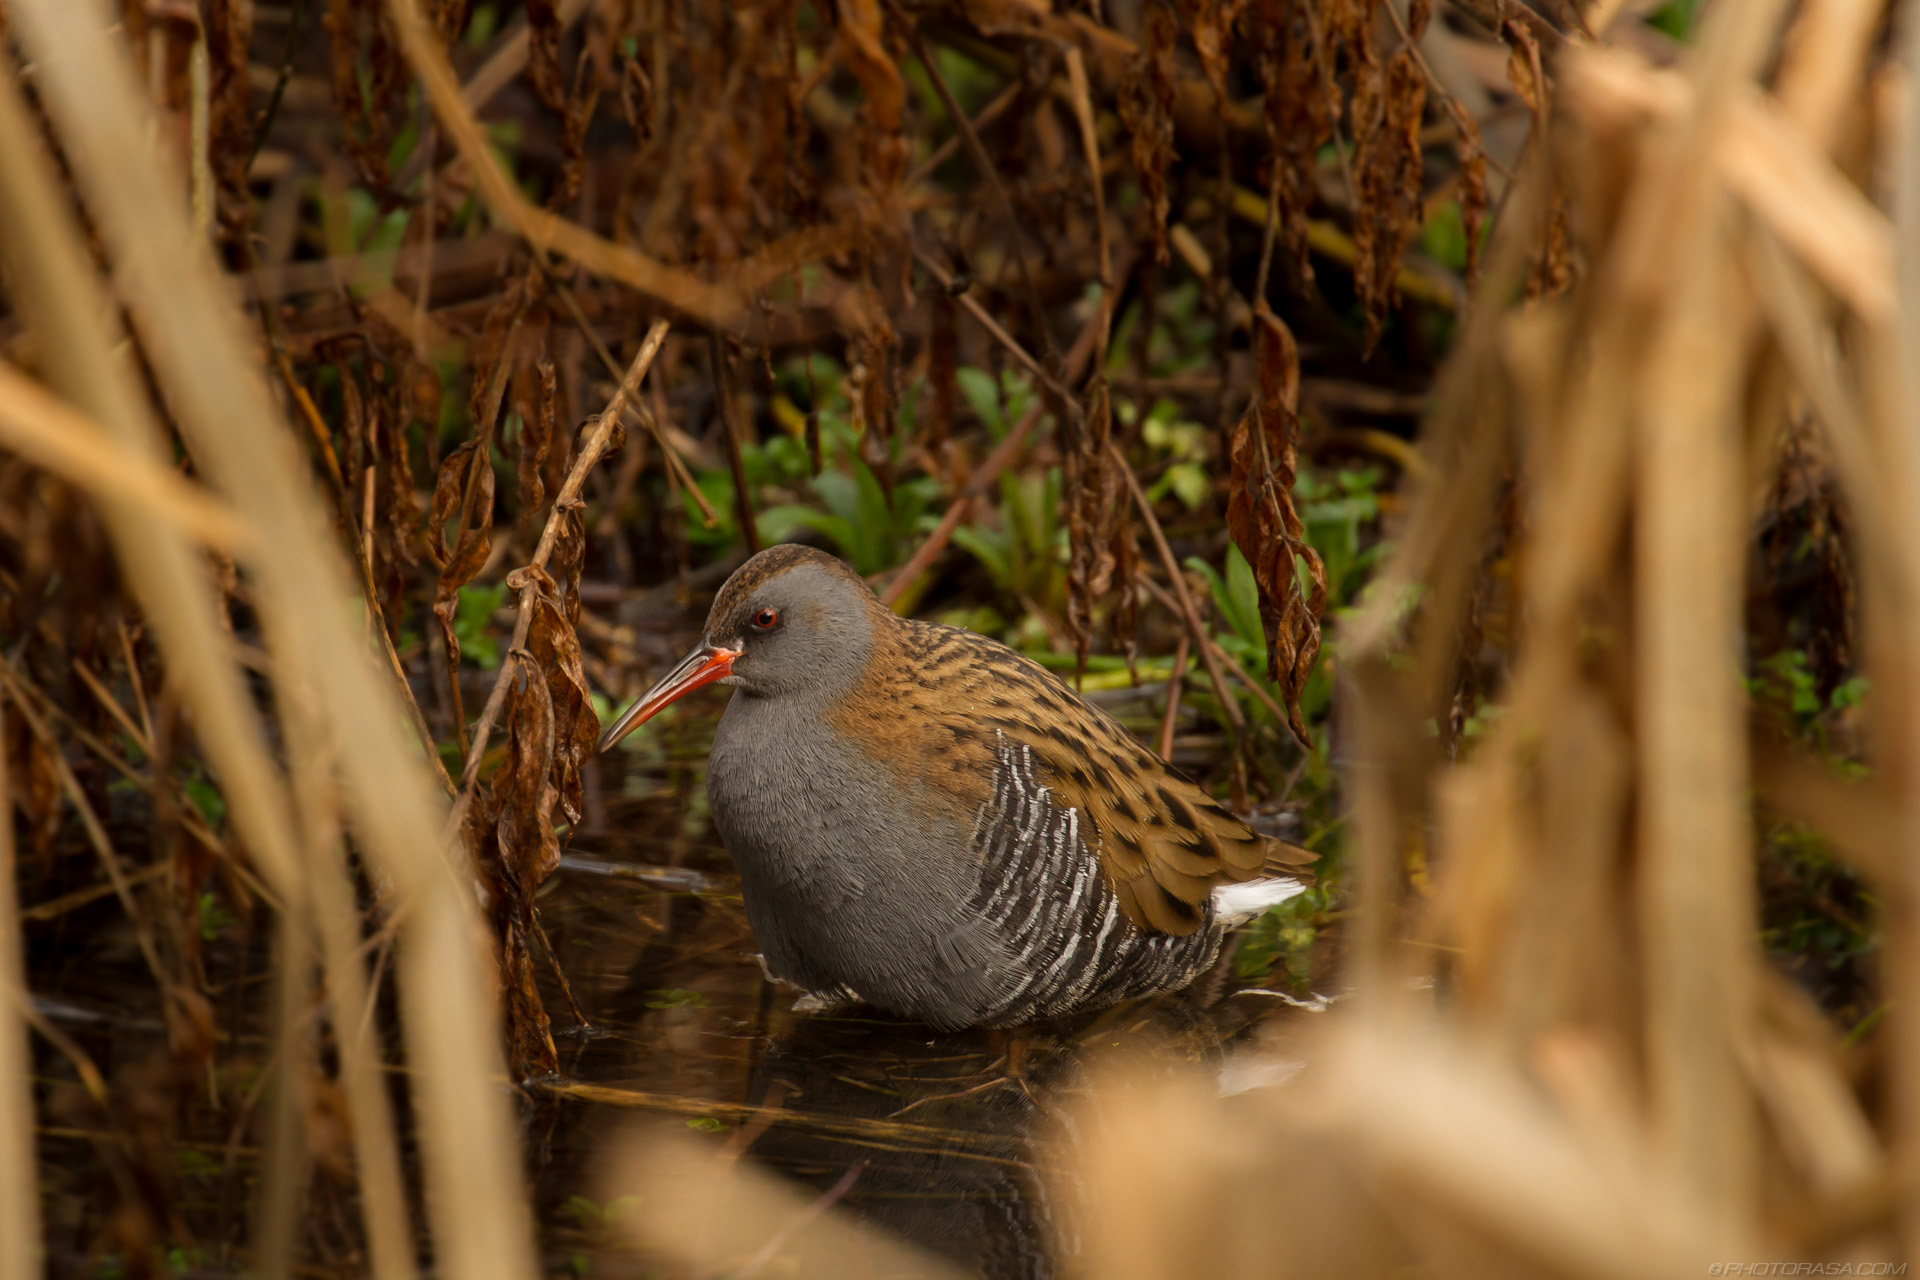 http://photorasa.com/water-rail-by-the-stream/rail-bird-in-the-undergrowth/